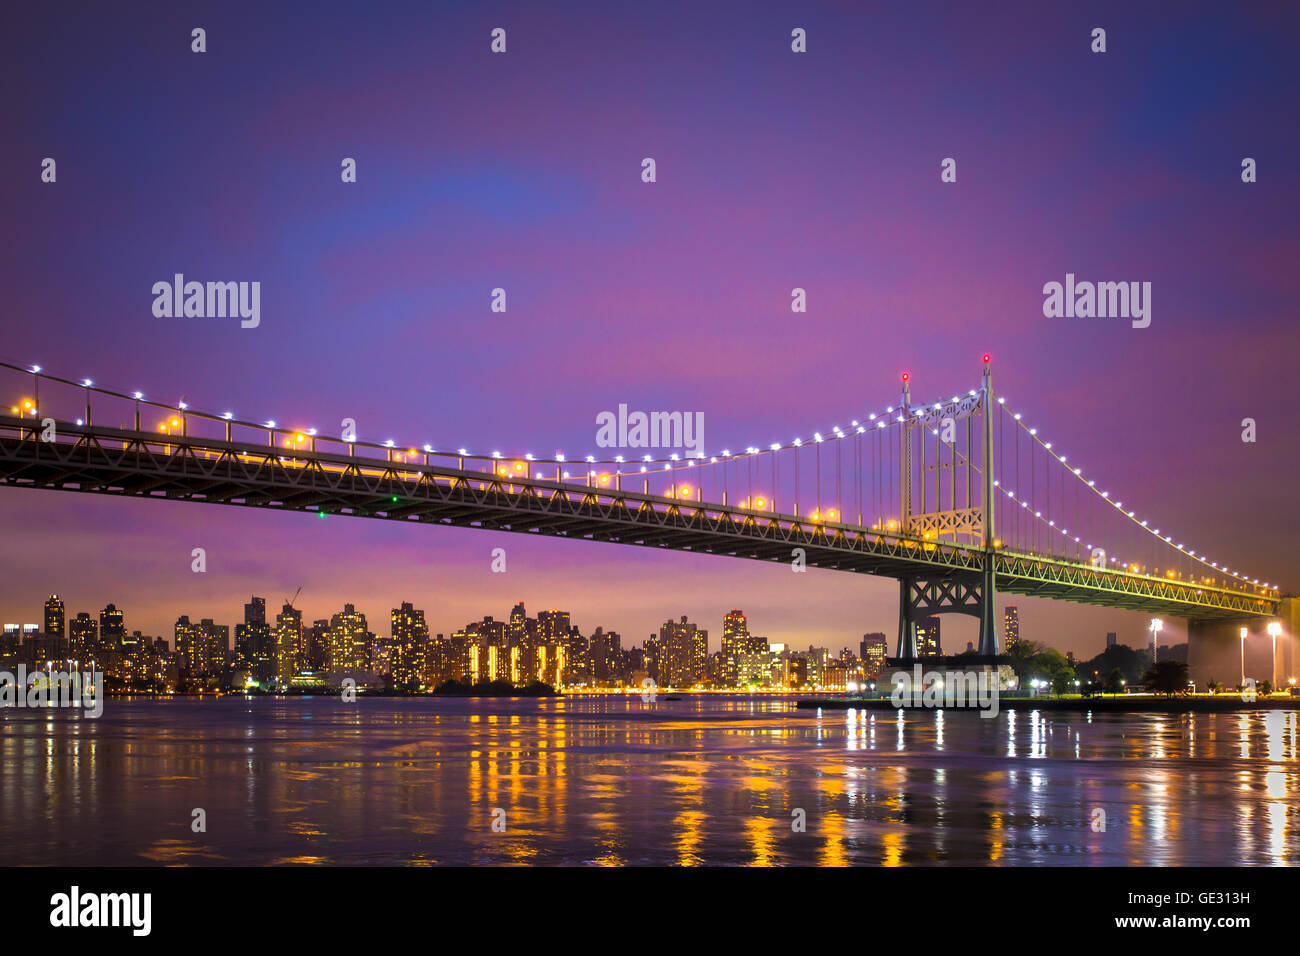 View of the Robert J. Kennedy RFK Bridge in New York City from Astoria Queens to Manhattan seen just after sunset - Stock Image